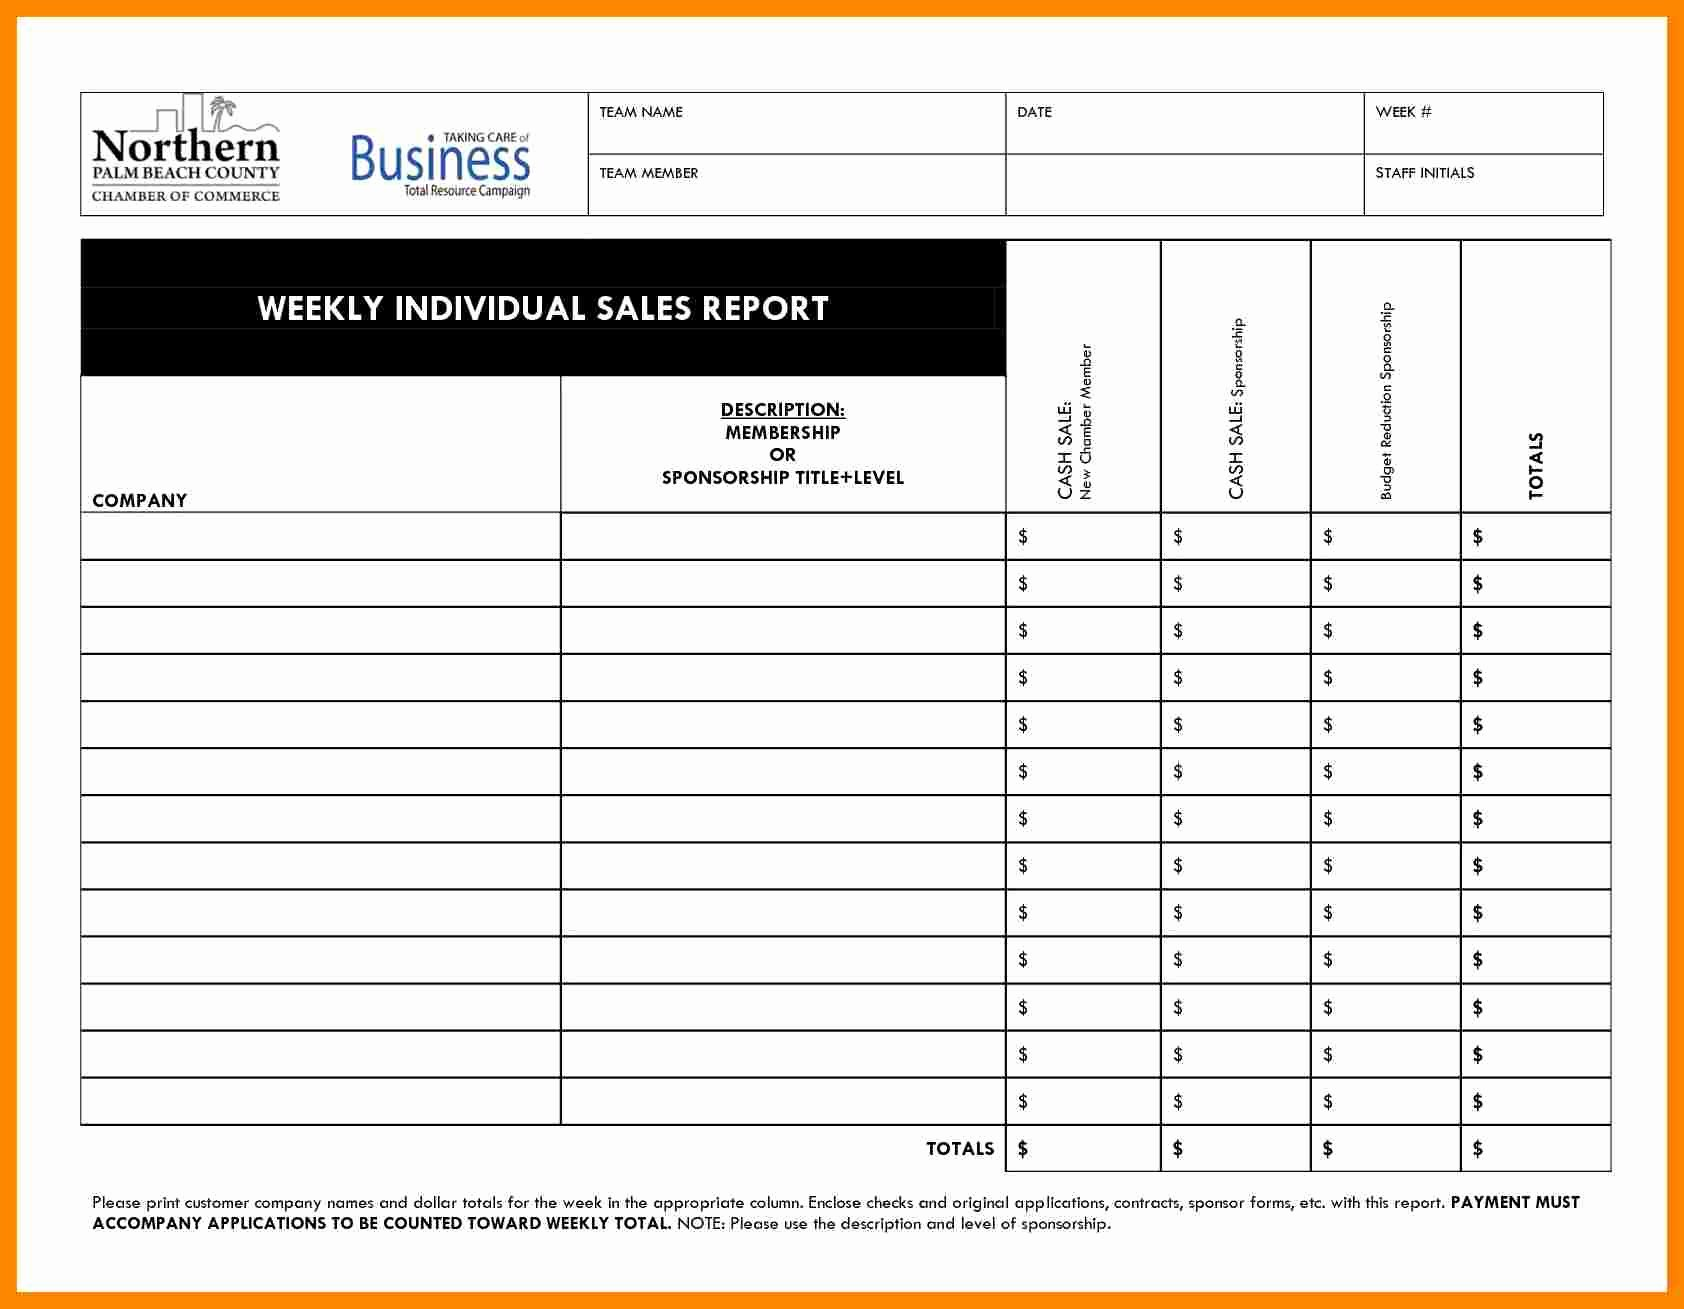 Daily Activity Report Template Excel Elegant Free Daily Sales Report Template Spreadsheet Restaurant